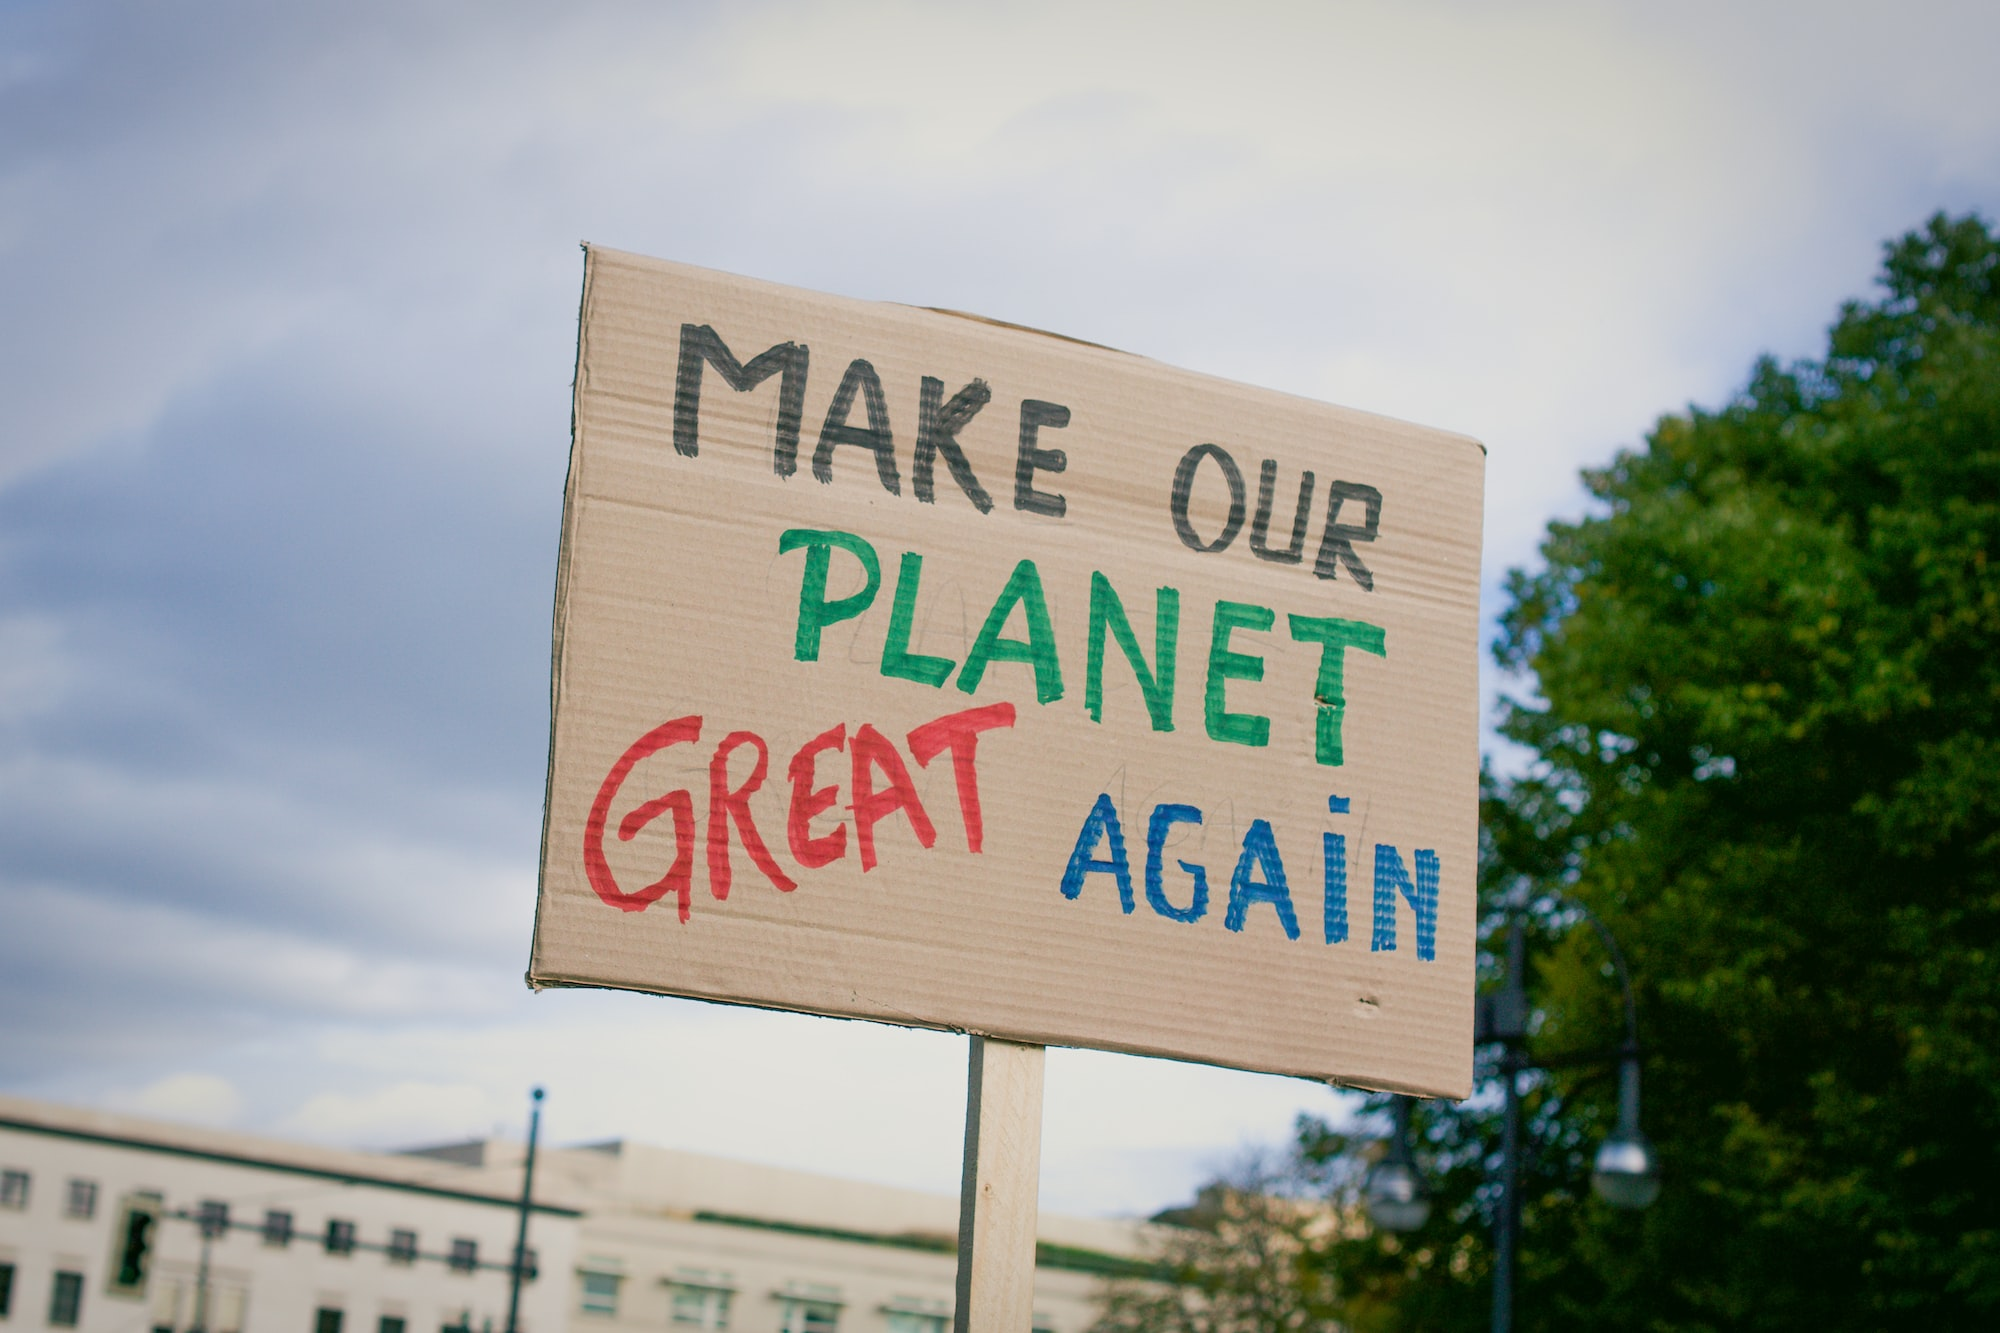 Make our planet great again poster at Fridays for Future